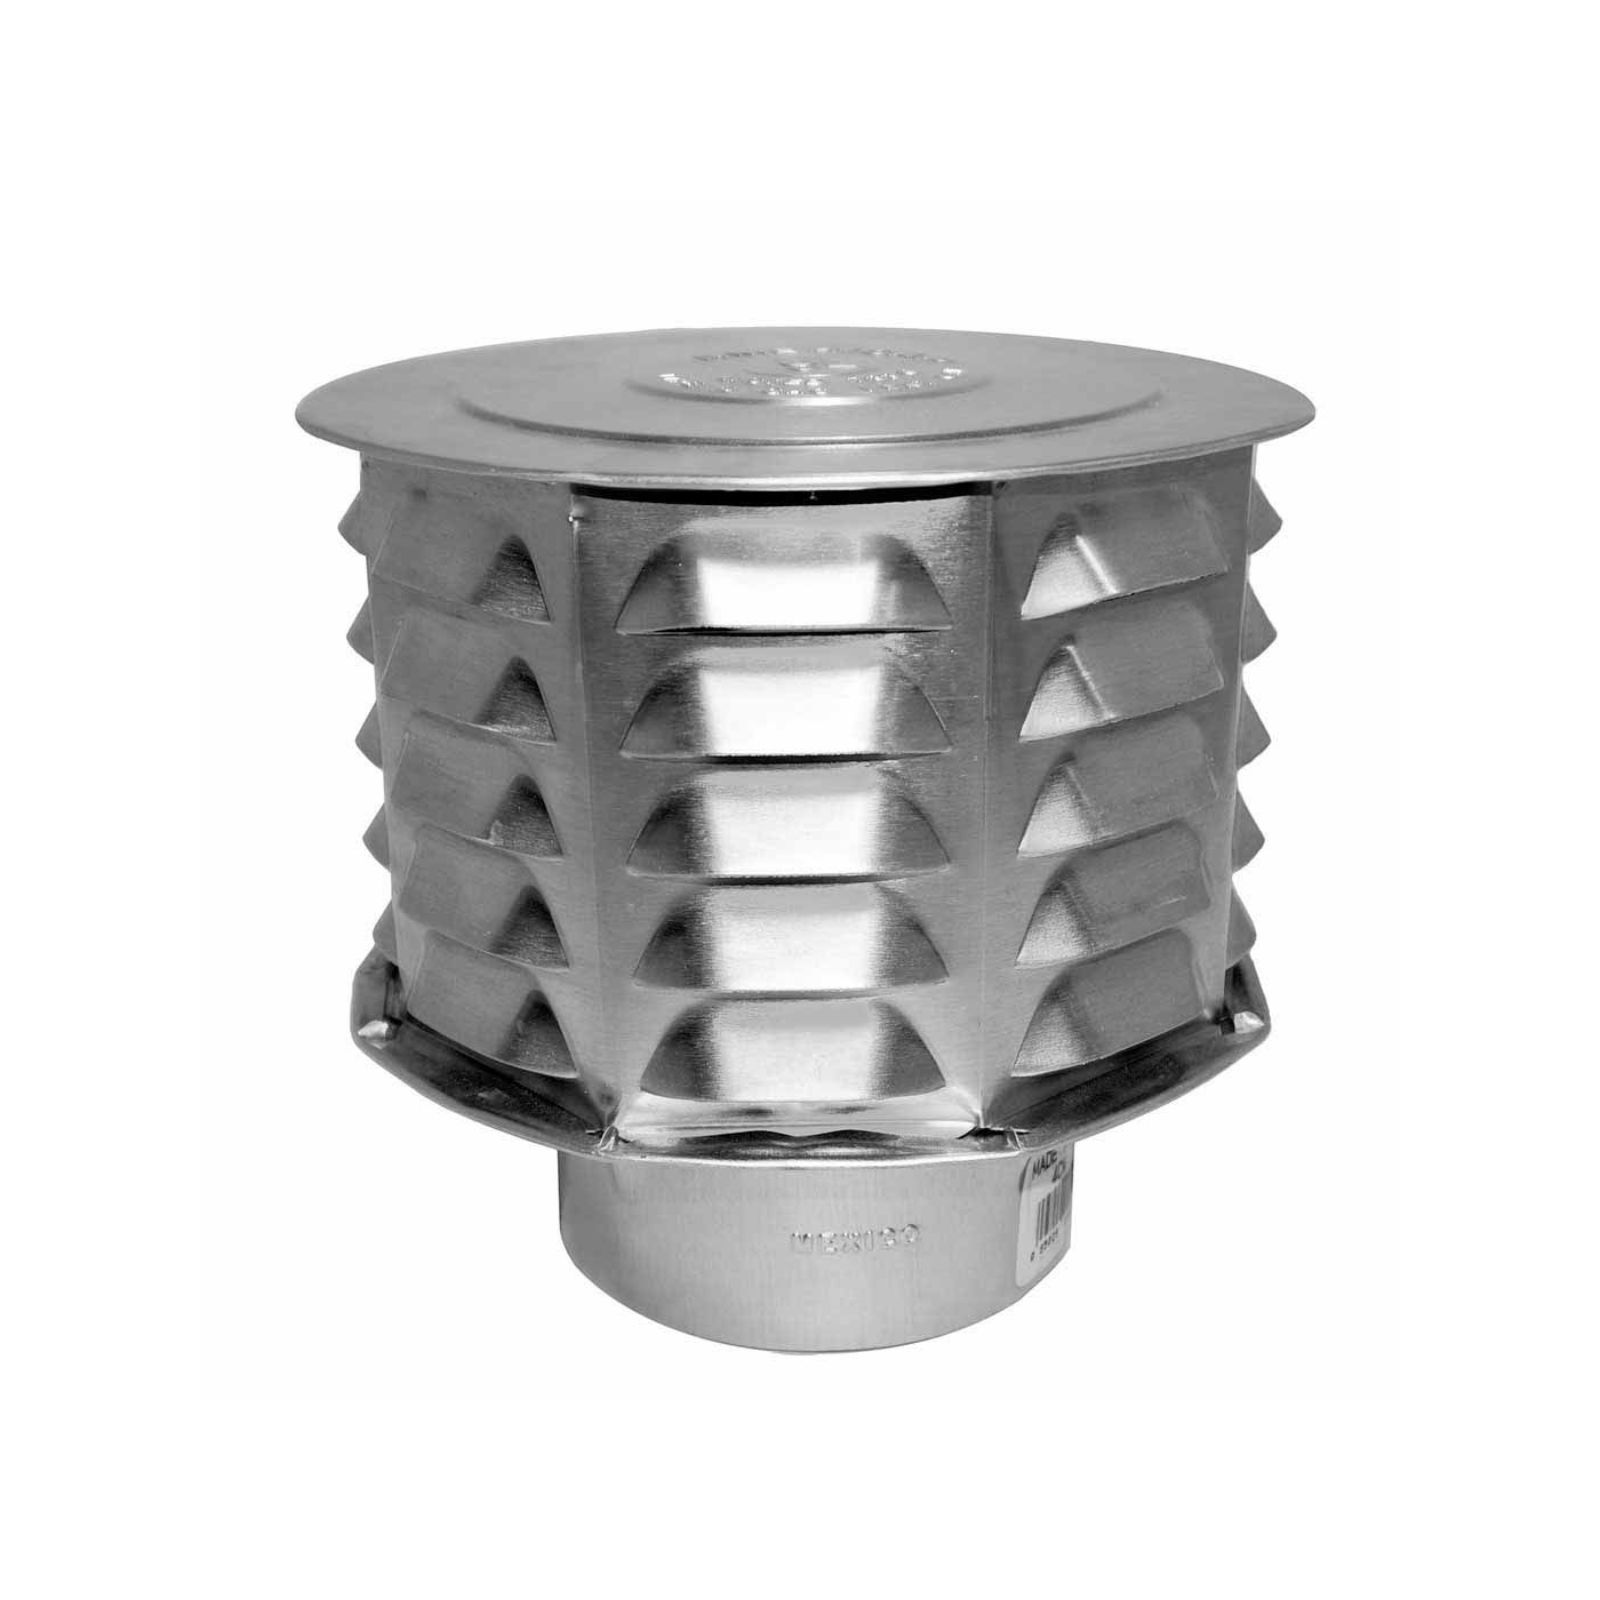 "AmeriVent 4CW - Universal Cap 4"", Louvered"